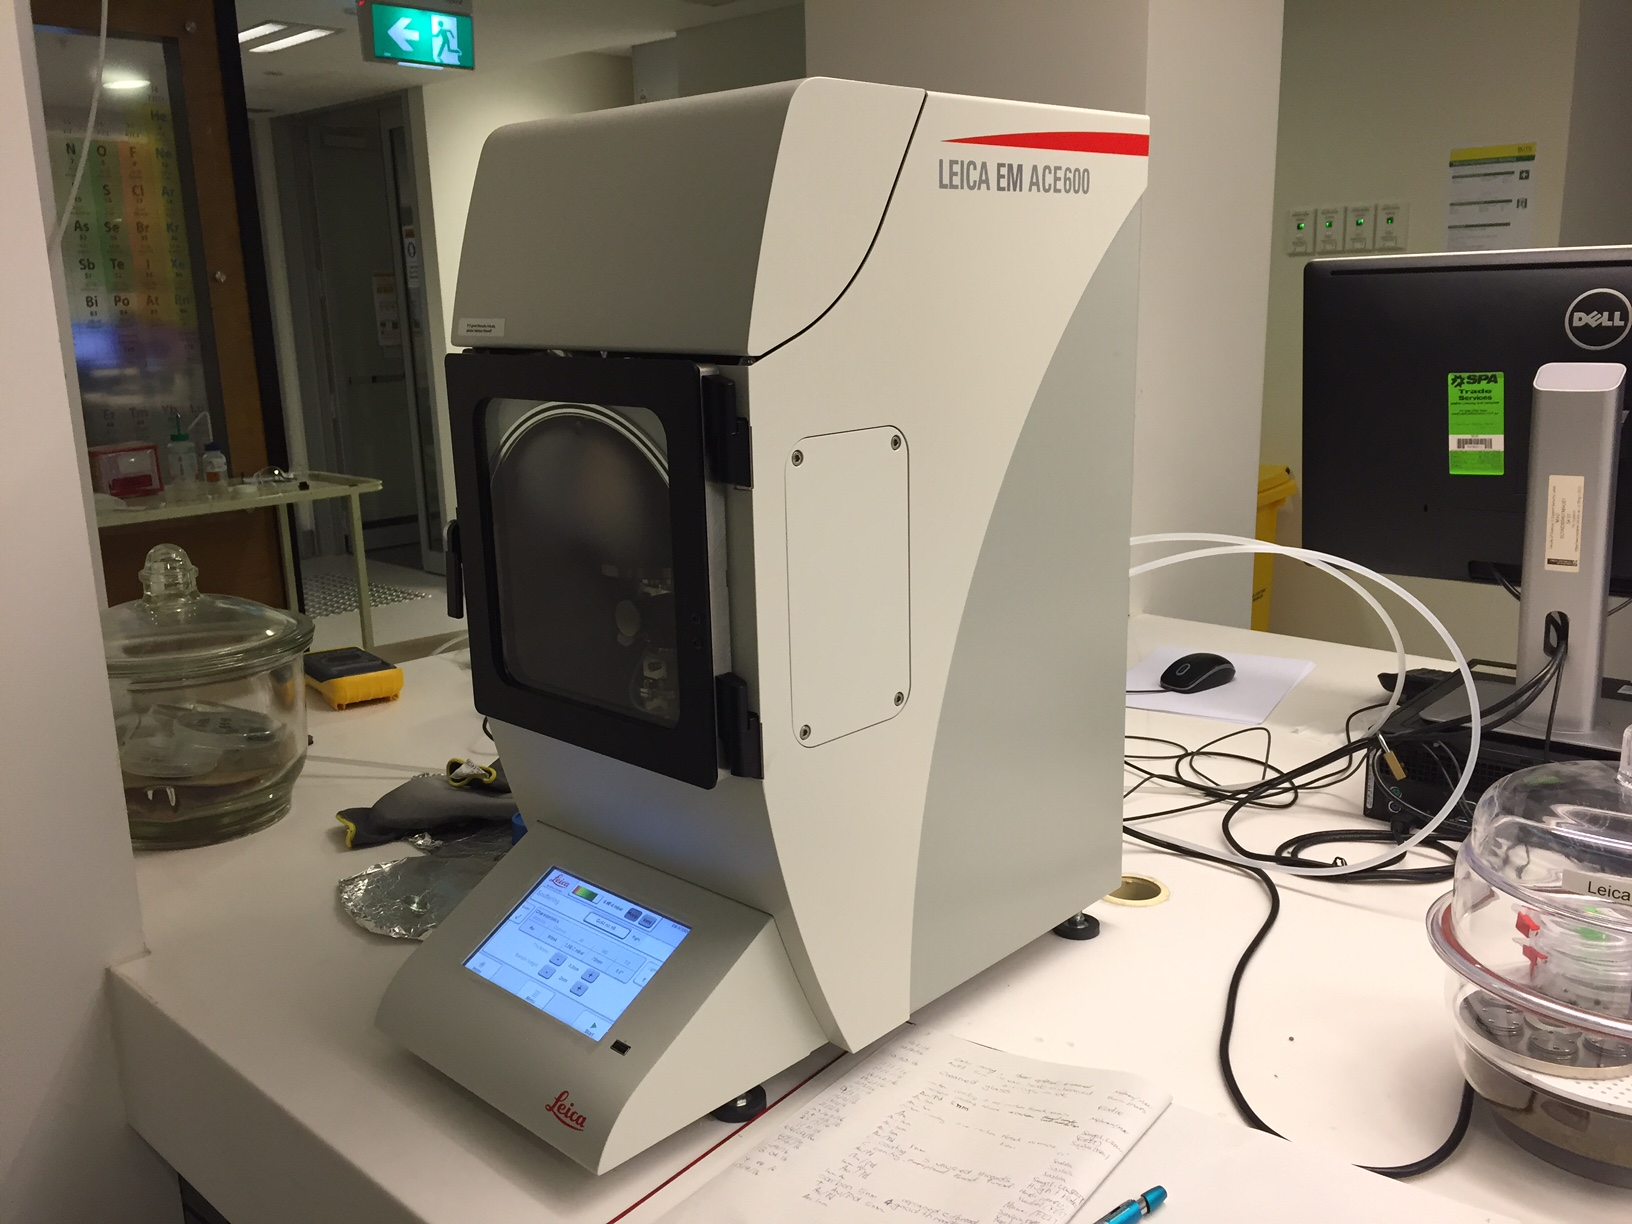 Image of the Leica EM ACE600 coater